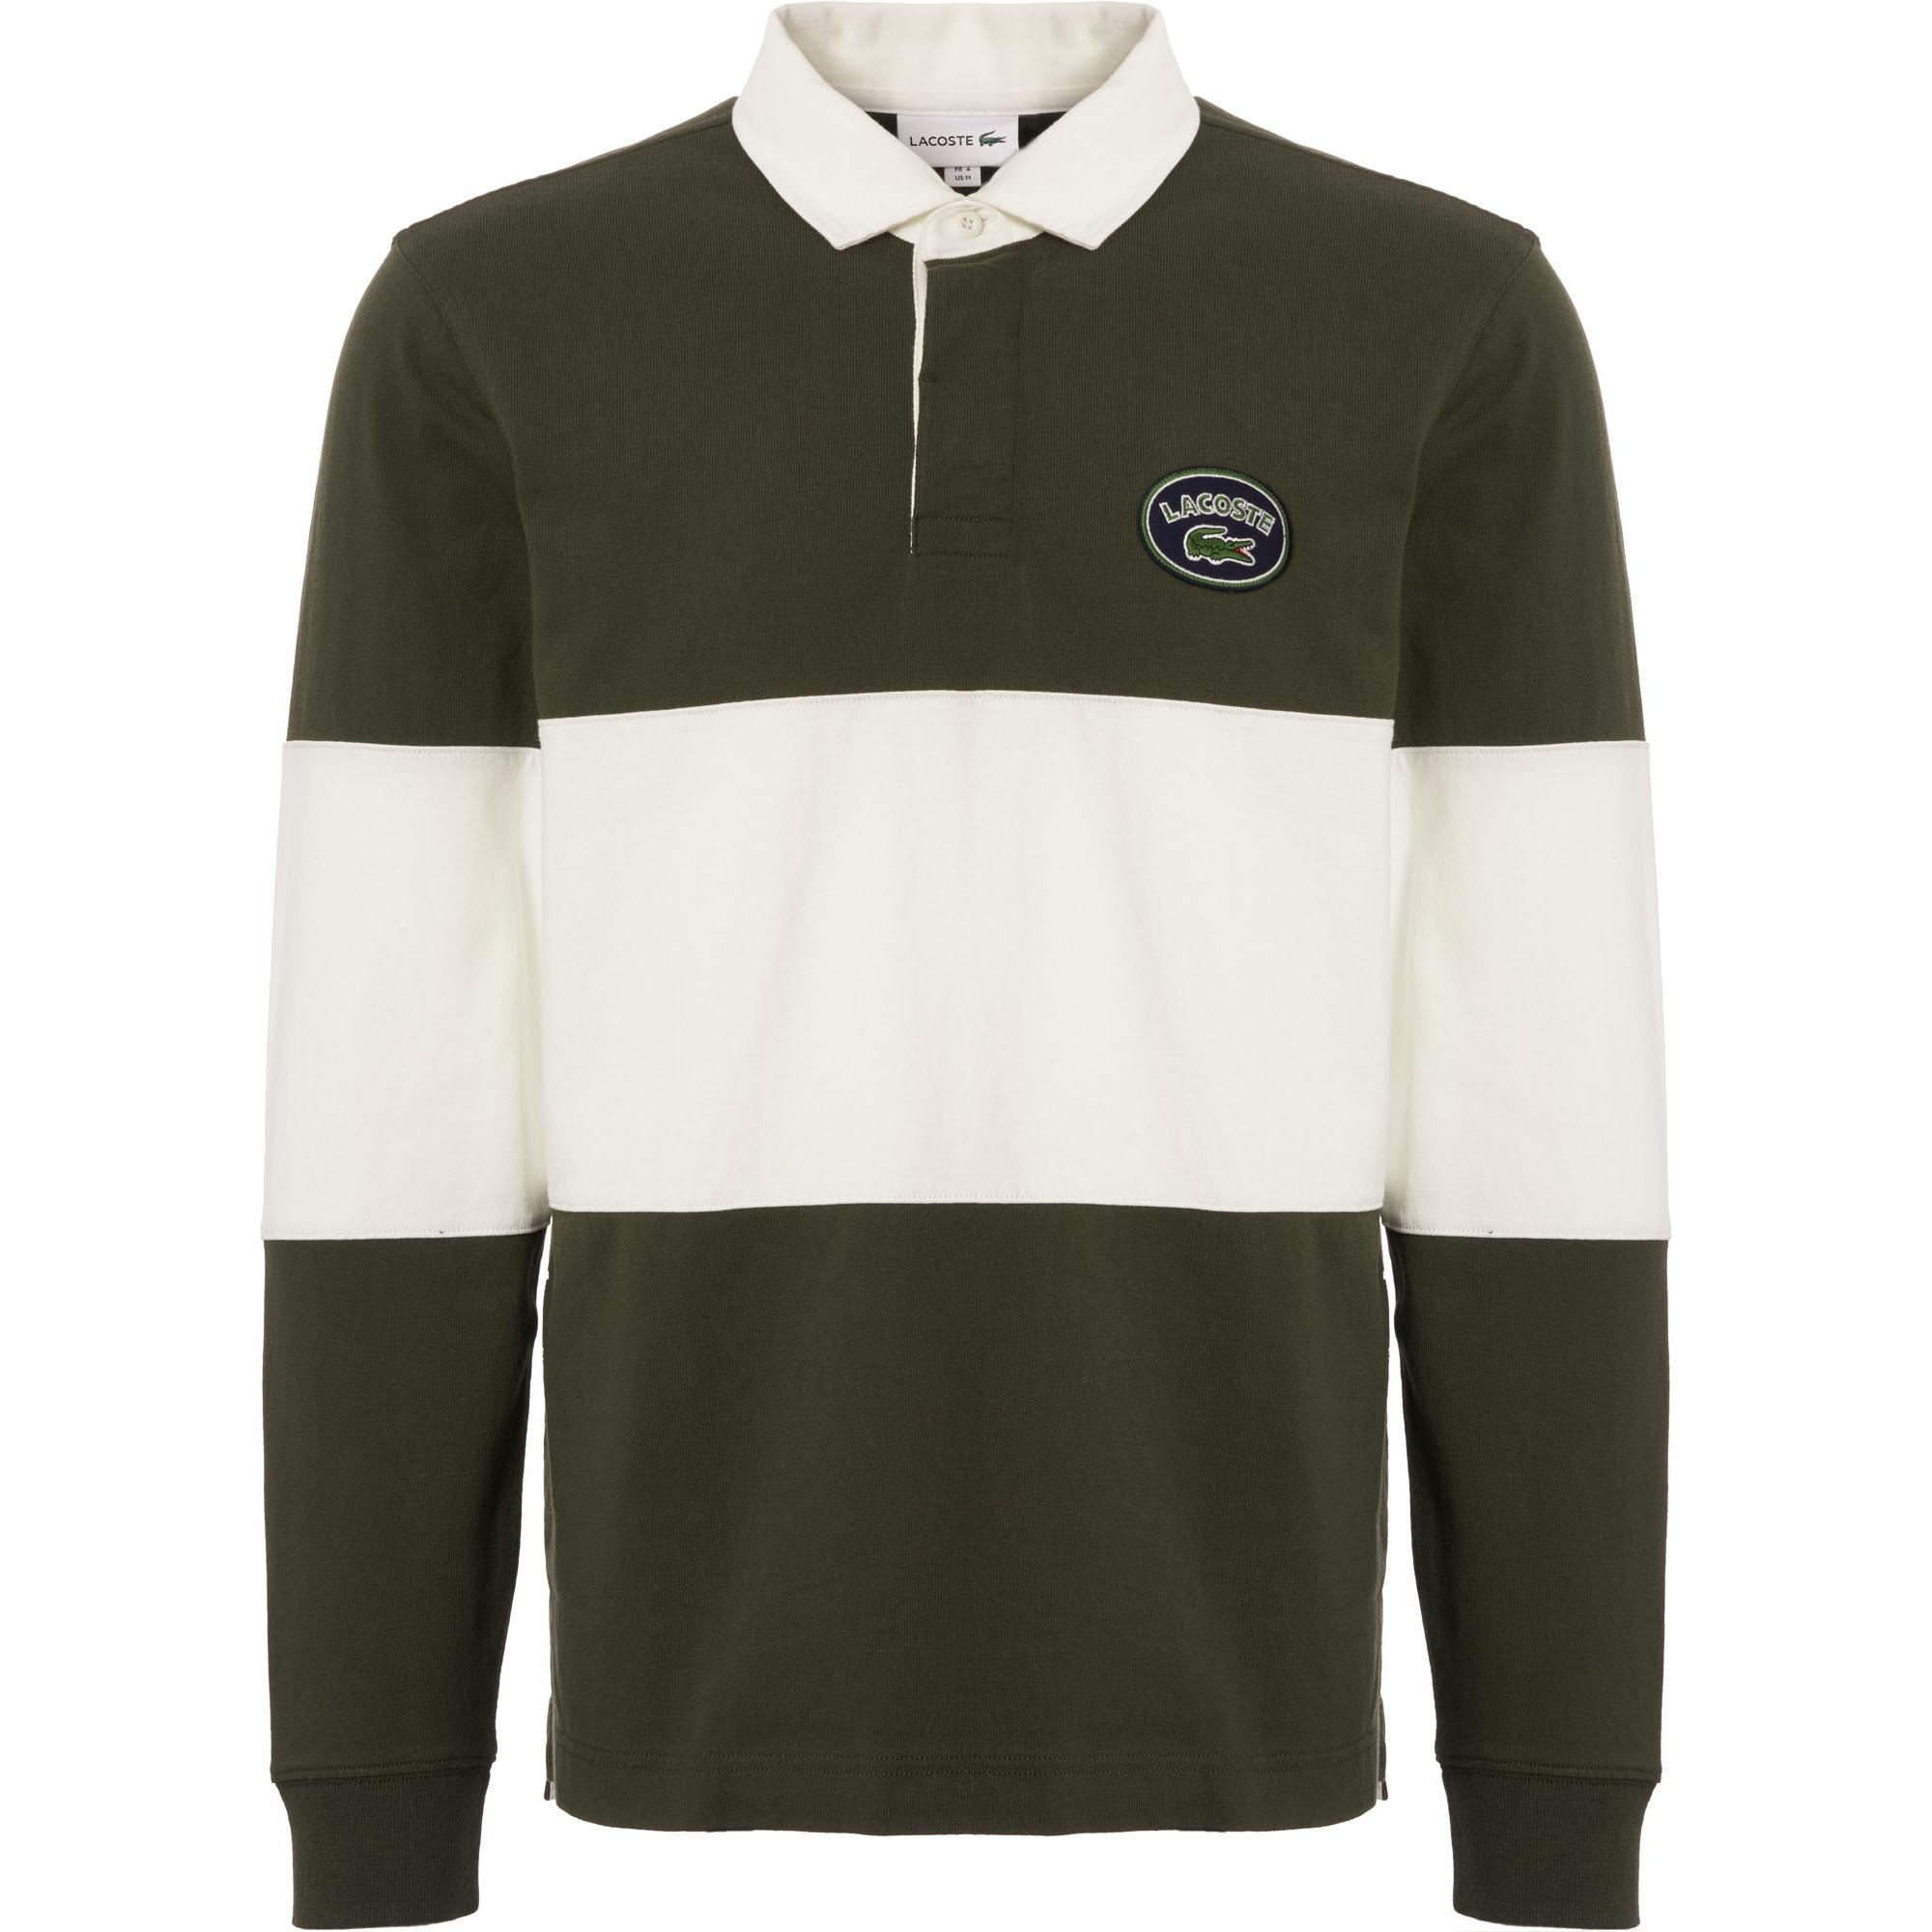 babd24e8 Lacoste Colourblock Long Sleeve Rugby Shirt - Olive & White in Green ...